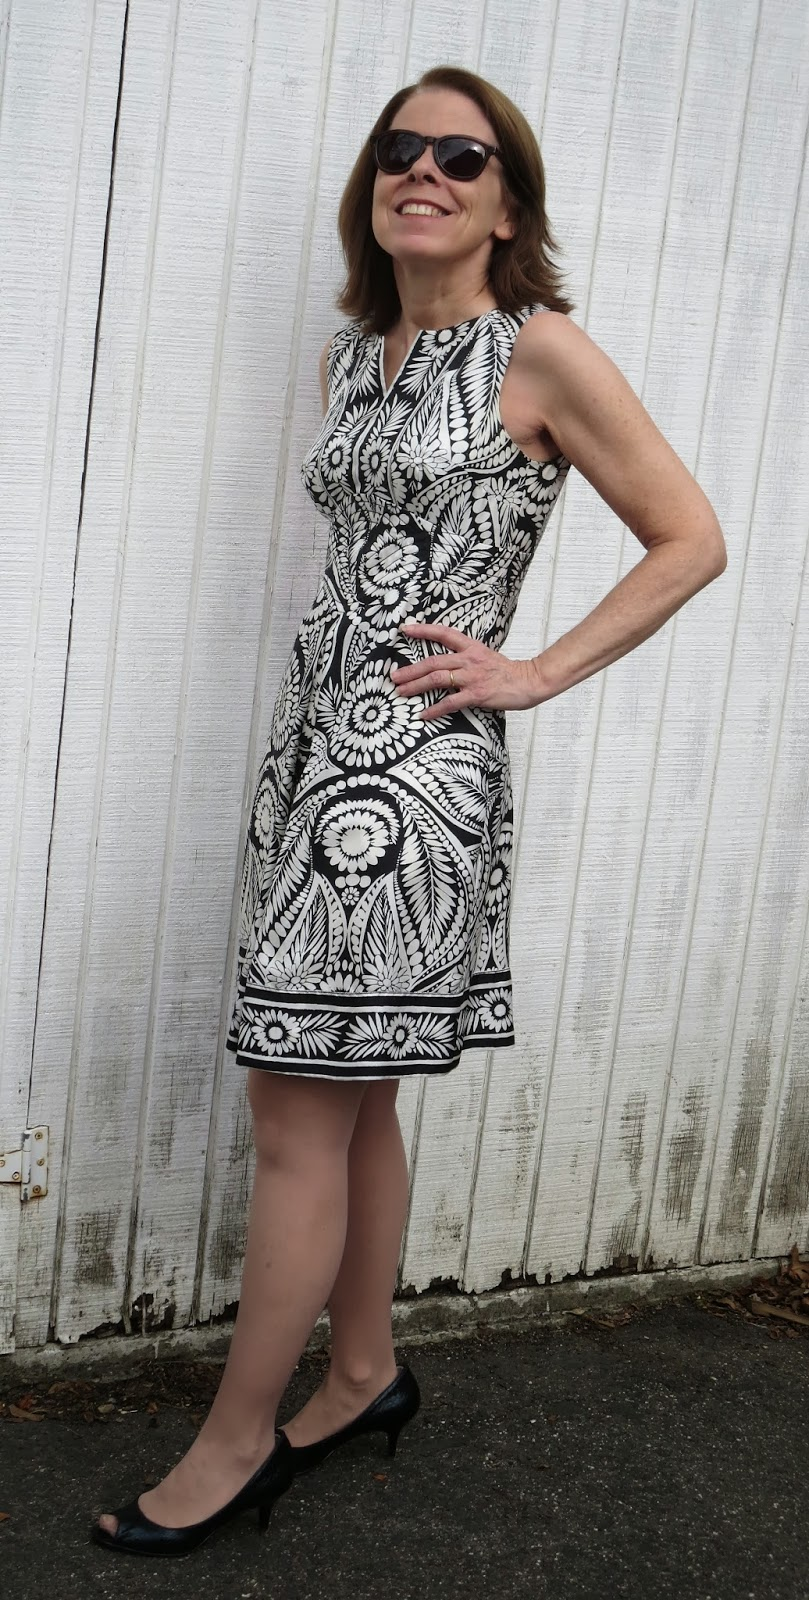 Flattering50: Power Print Dresses for Women Over 50